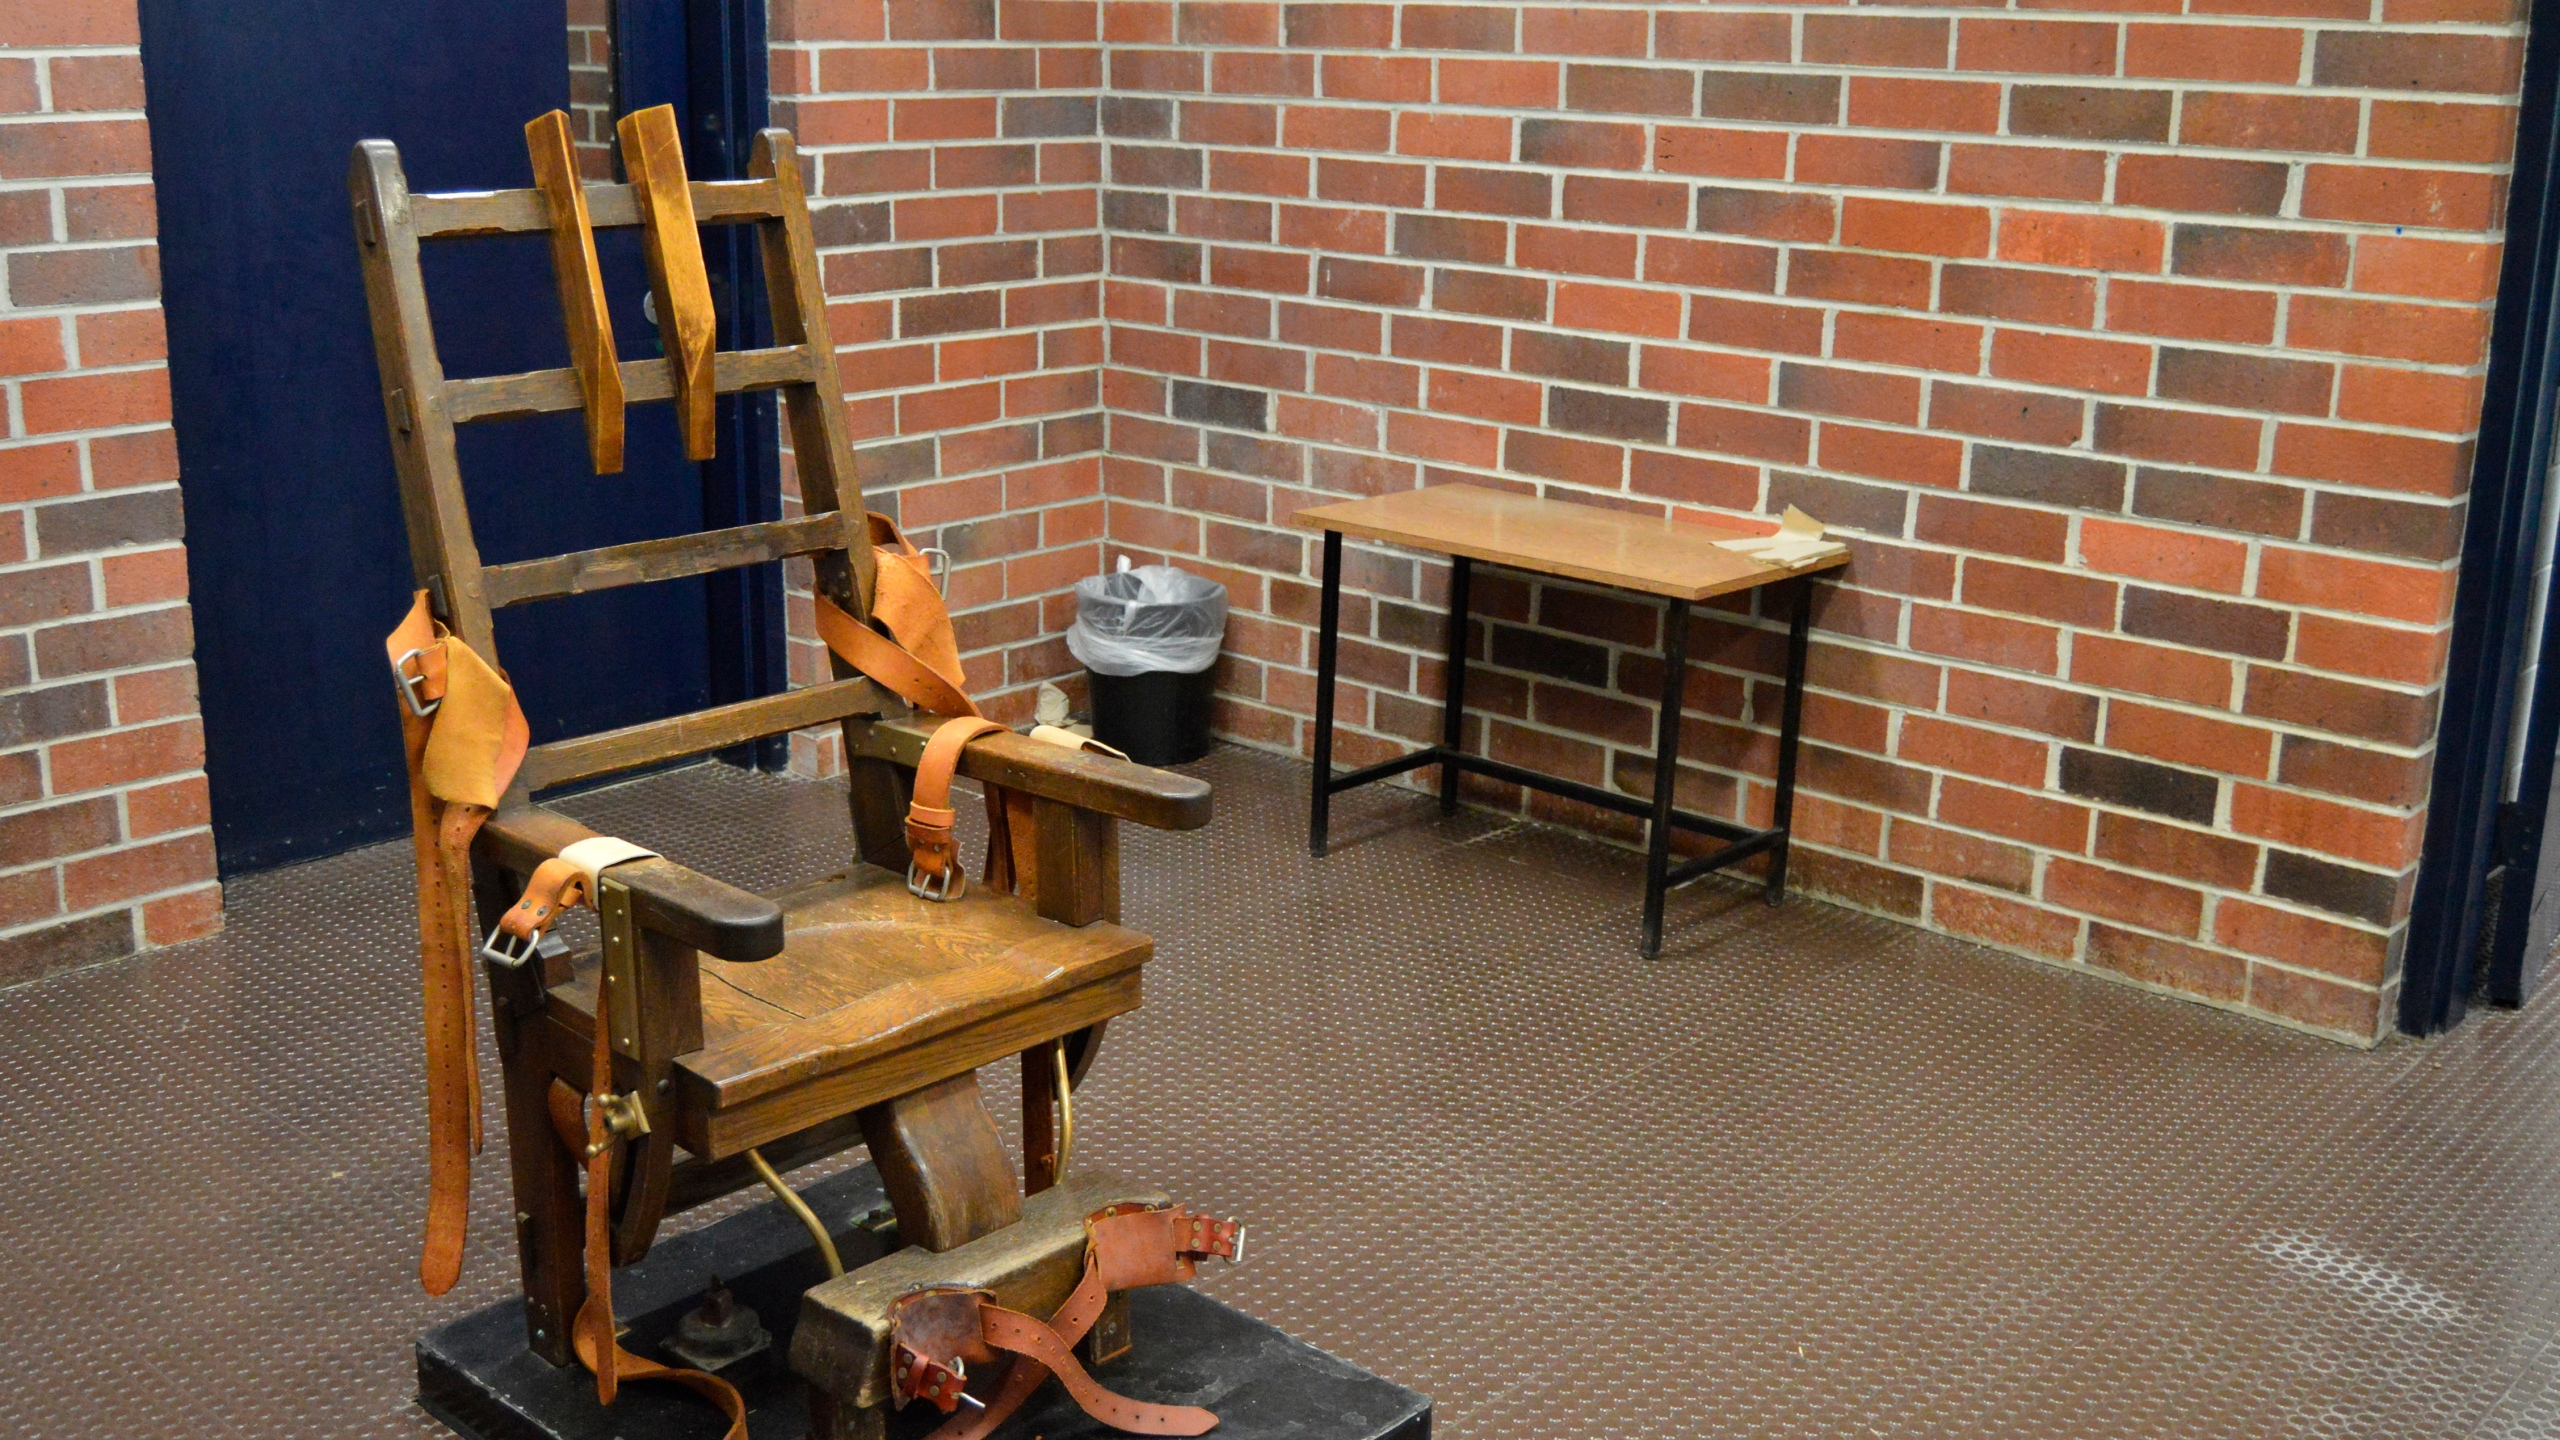 This March 2019, file photo, provided by the South Carolina Department of Corrections shows the state's electric chair in Columbia, S.C. South Carolina House members may soon debate whether to restart the state's stalled death penalty with the electric chair and whether to add a firing squad to the execution methods. The state's House Judiciary Committee approved a bill Tuesday, April 27, 2021, that would let condemned inmates choose death by being shot in the heart by several sharpshooters. (Kinard Lisbon/South Carolina Department of Corrections via AP, File)